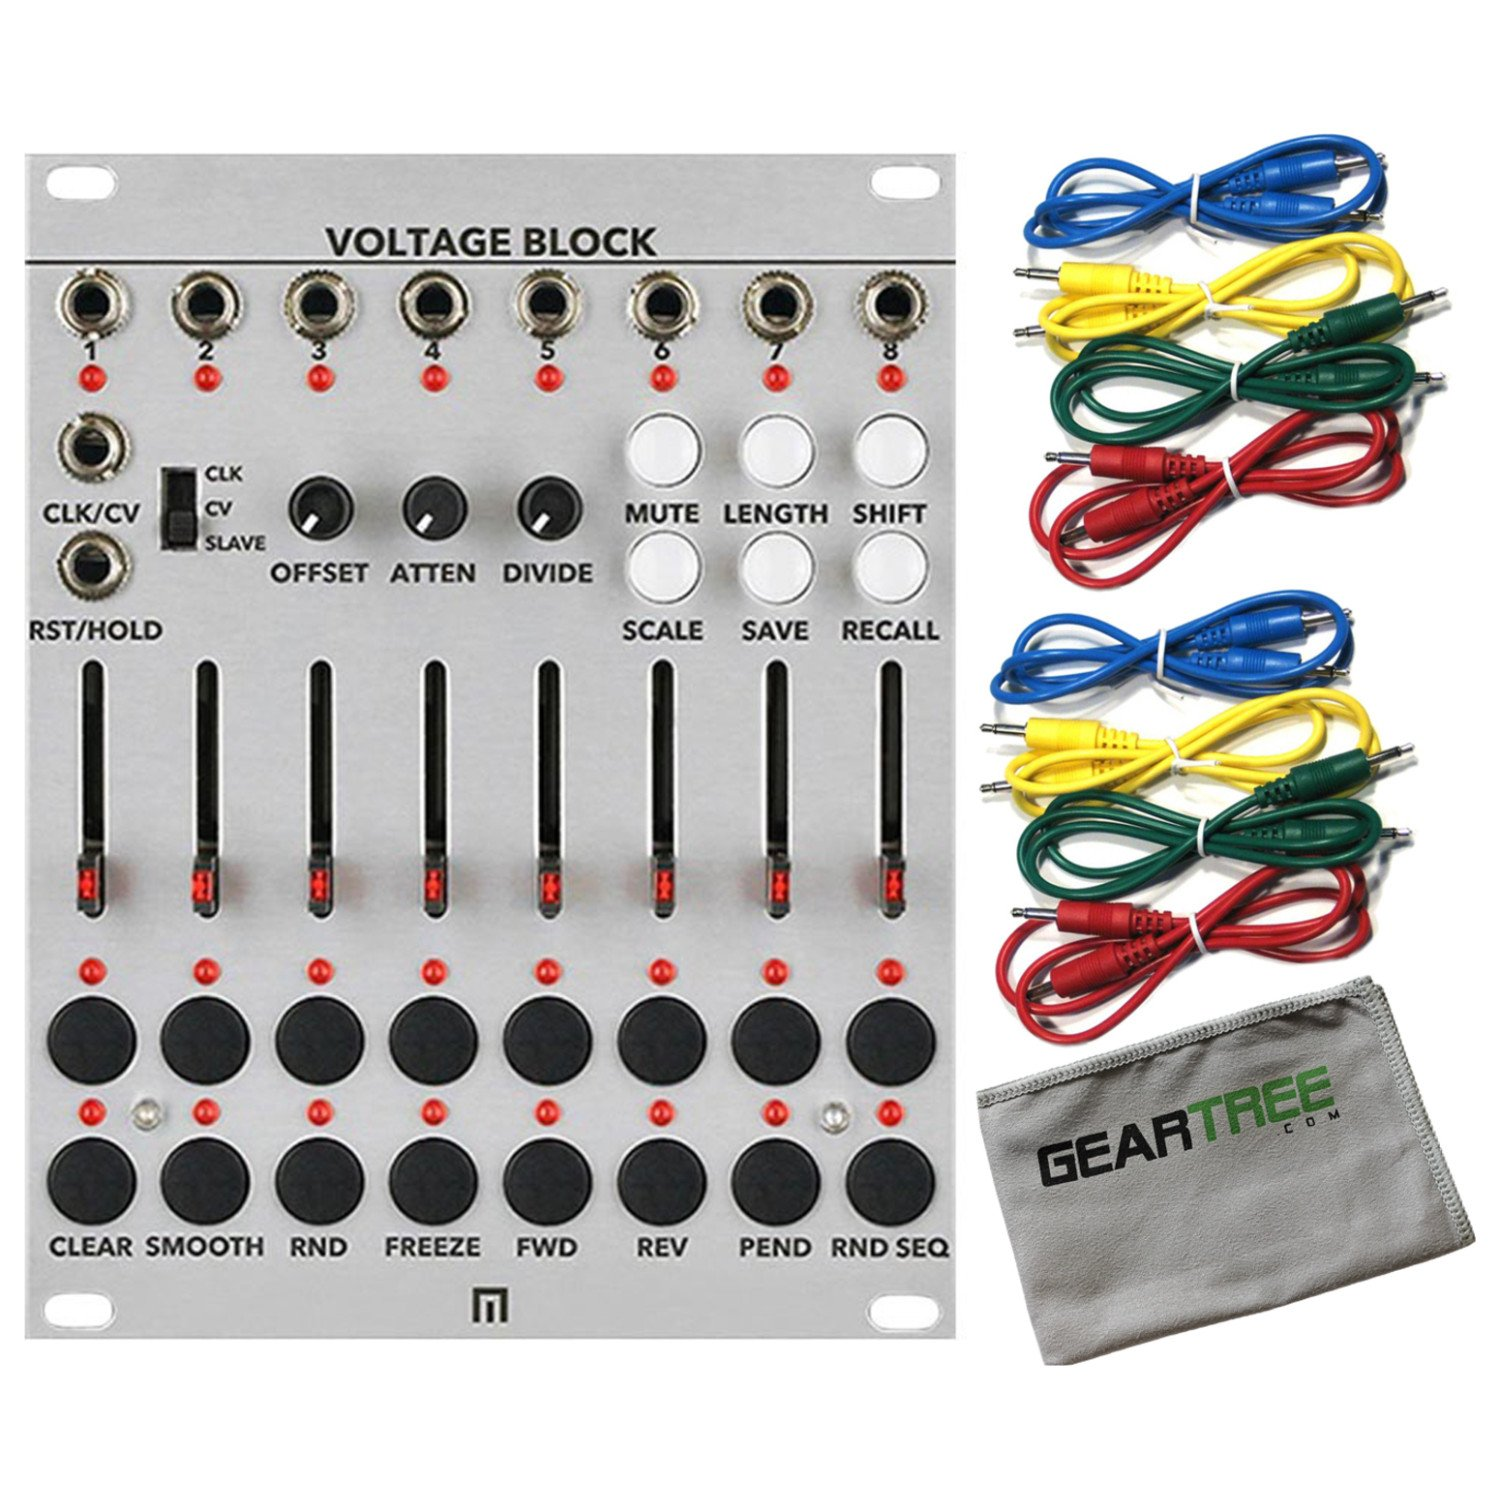 Malekko Voltage Block 8-CHANNEL 16-STAGE CV SEQUENCER w/Geartree Cloth and 8 Ca